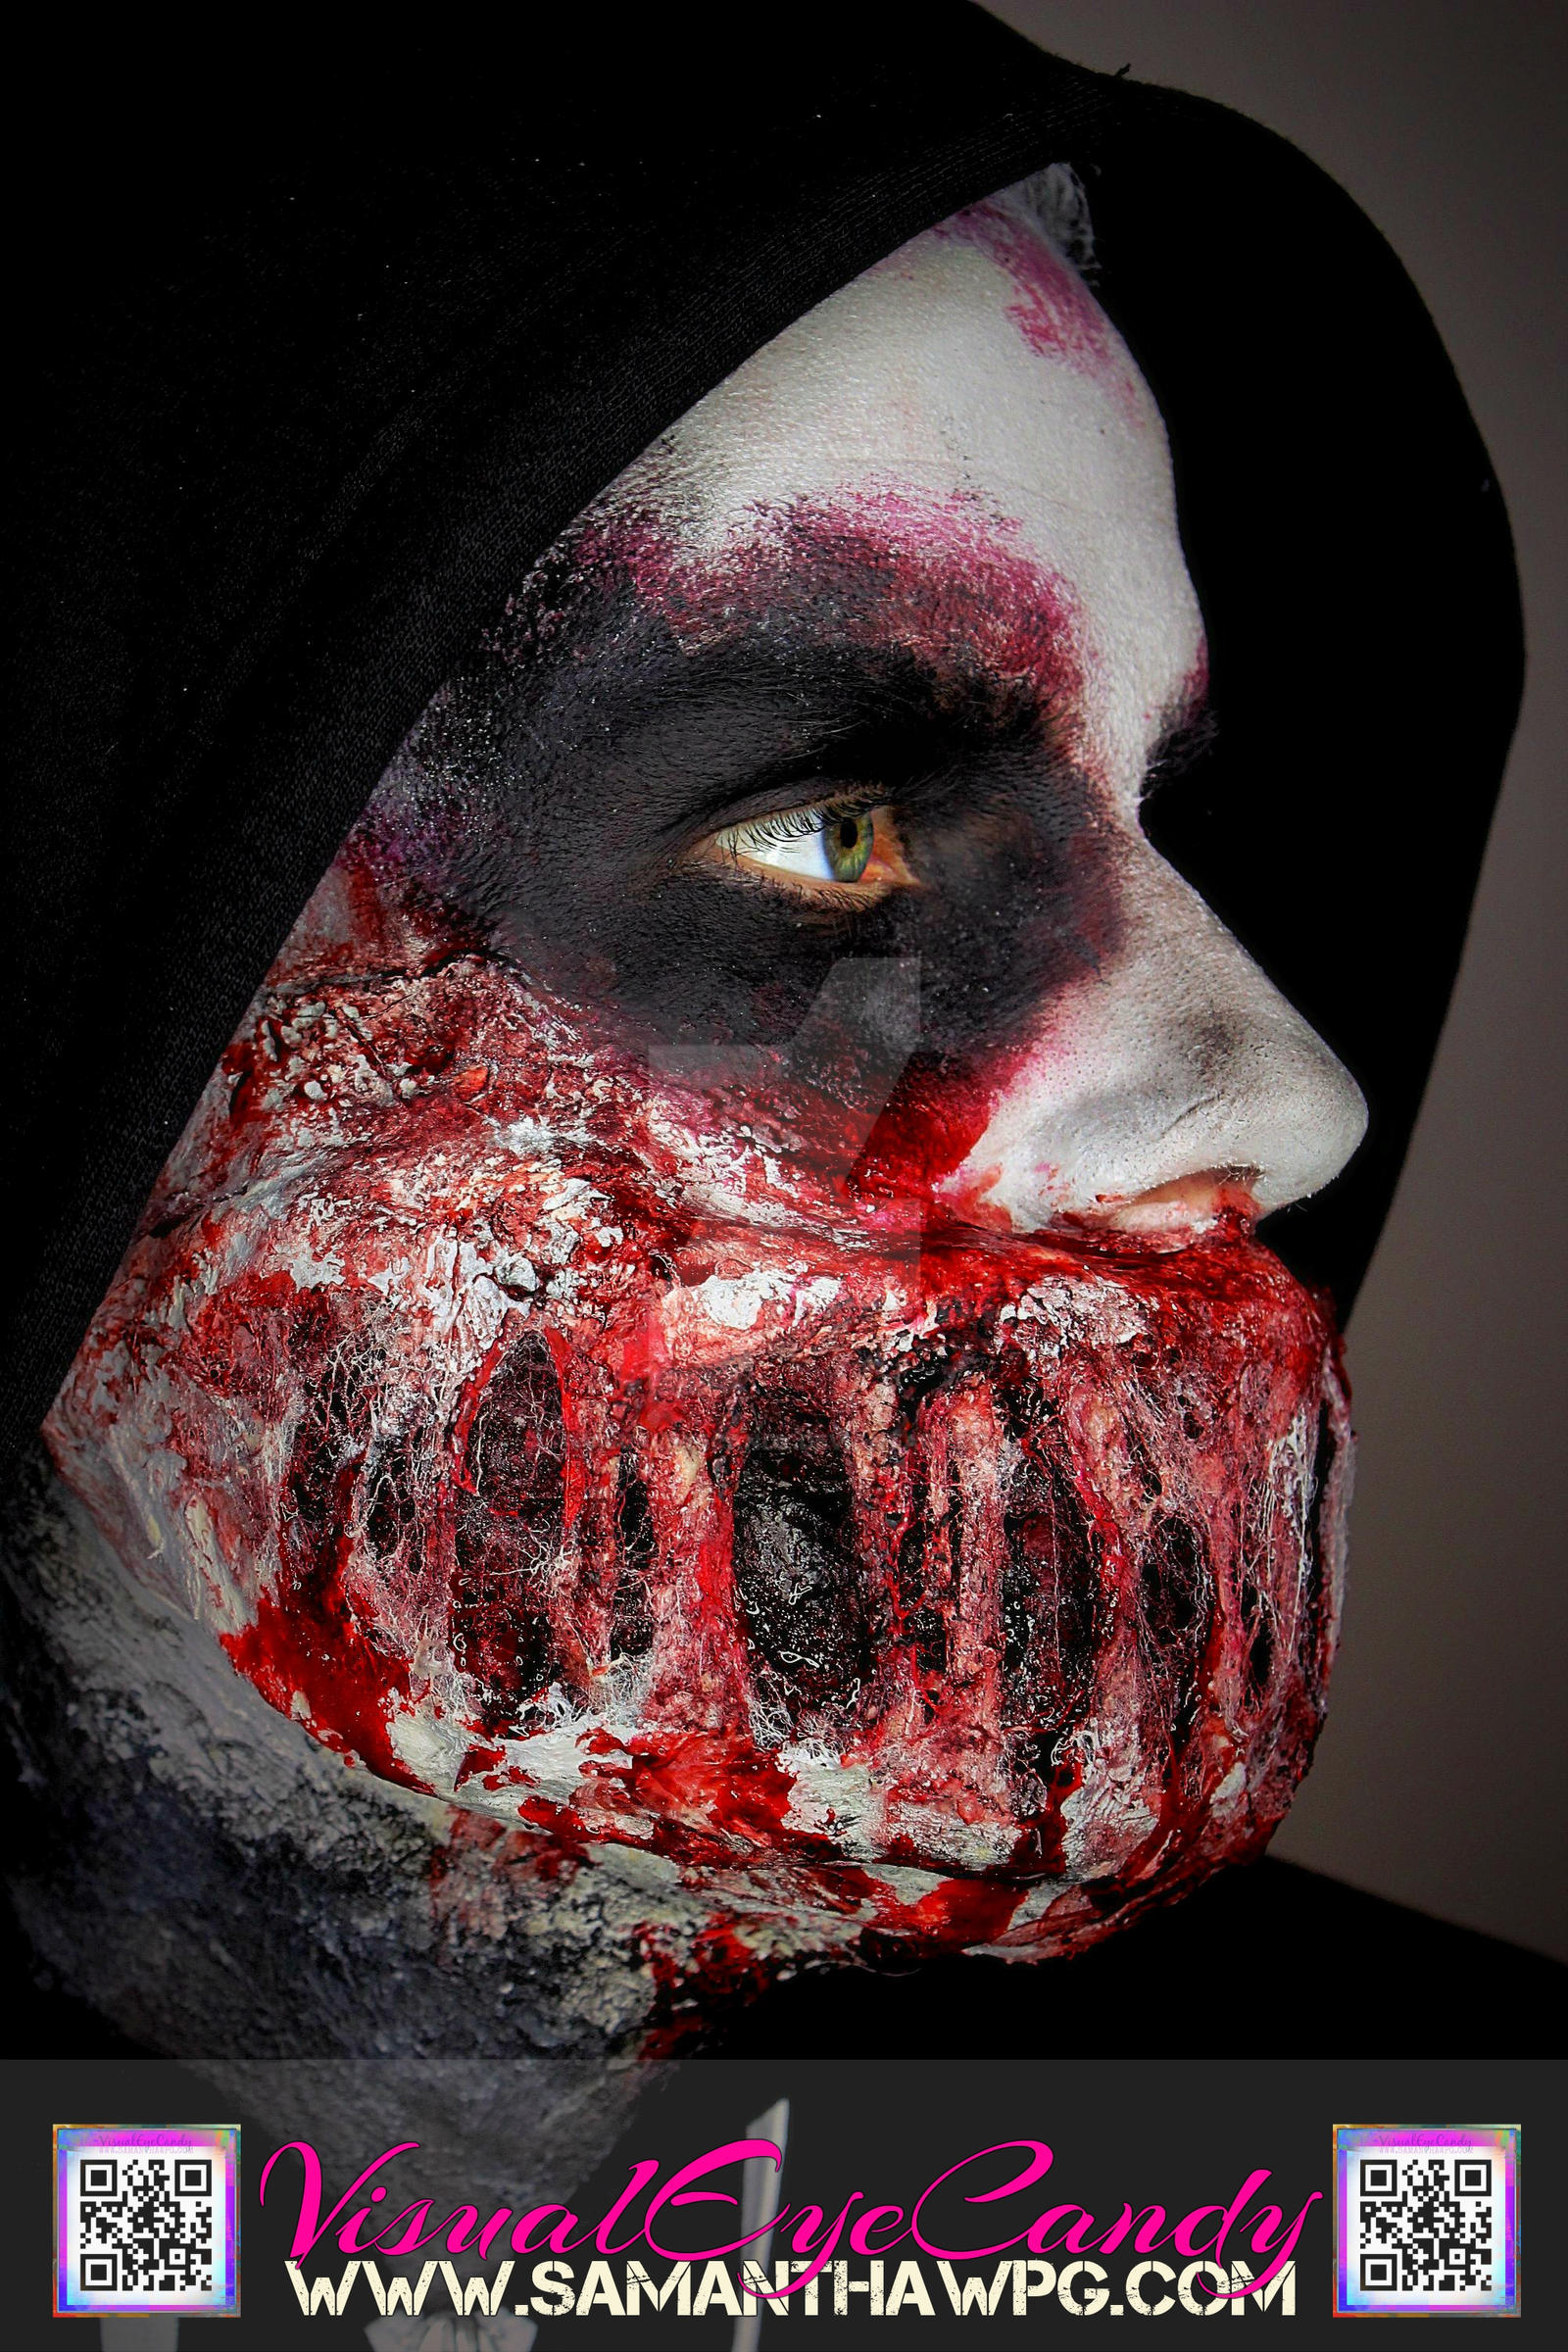 Side Profile of Zombie Mouth VisualEyeCandy by VisualEyeCandy